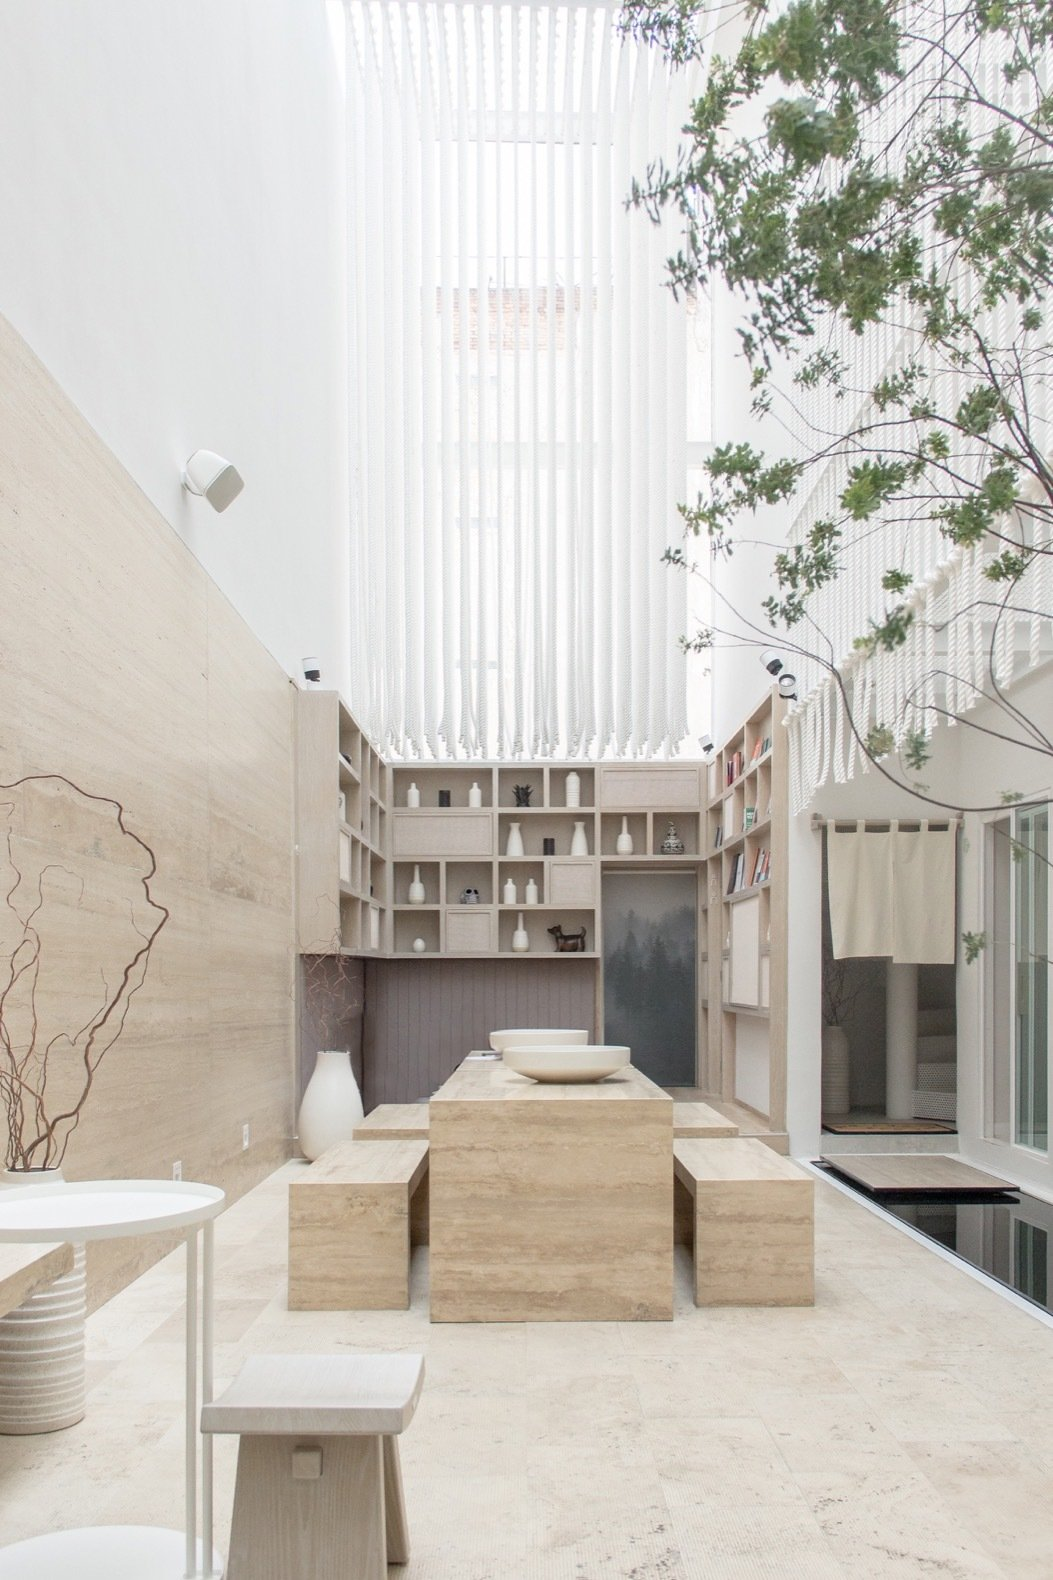 the-light-filled-welcome-area-features-an-open-library-seating-and-a-zen-garden.jpg